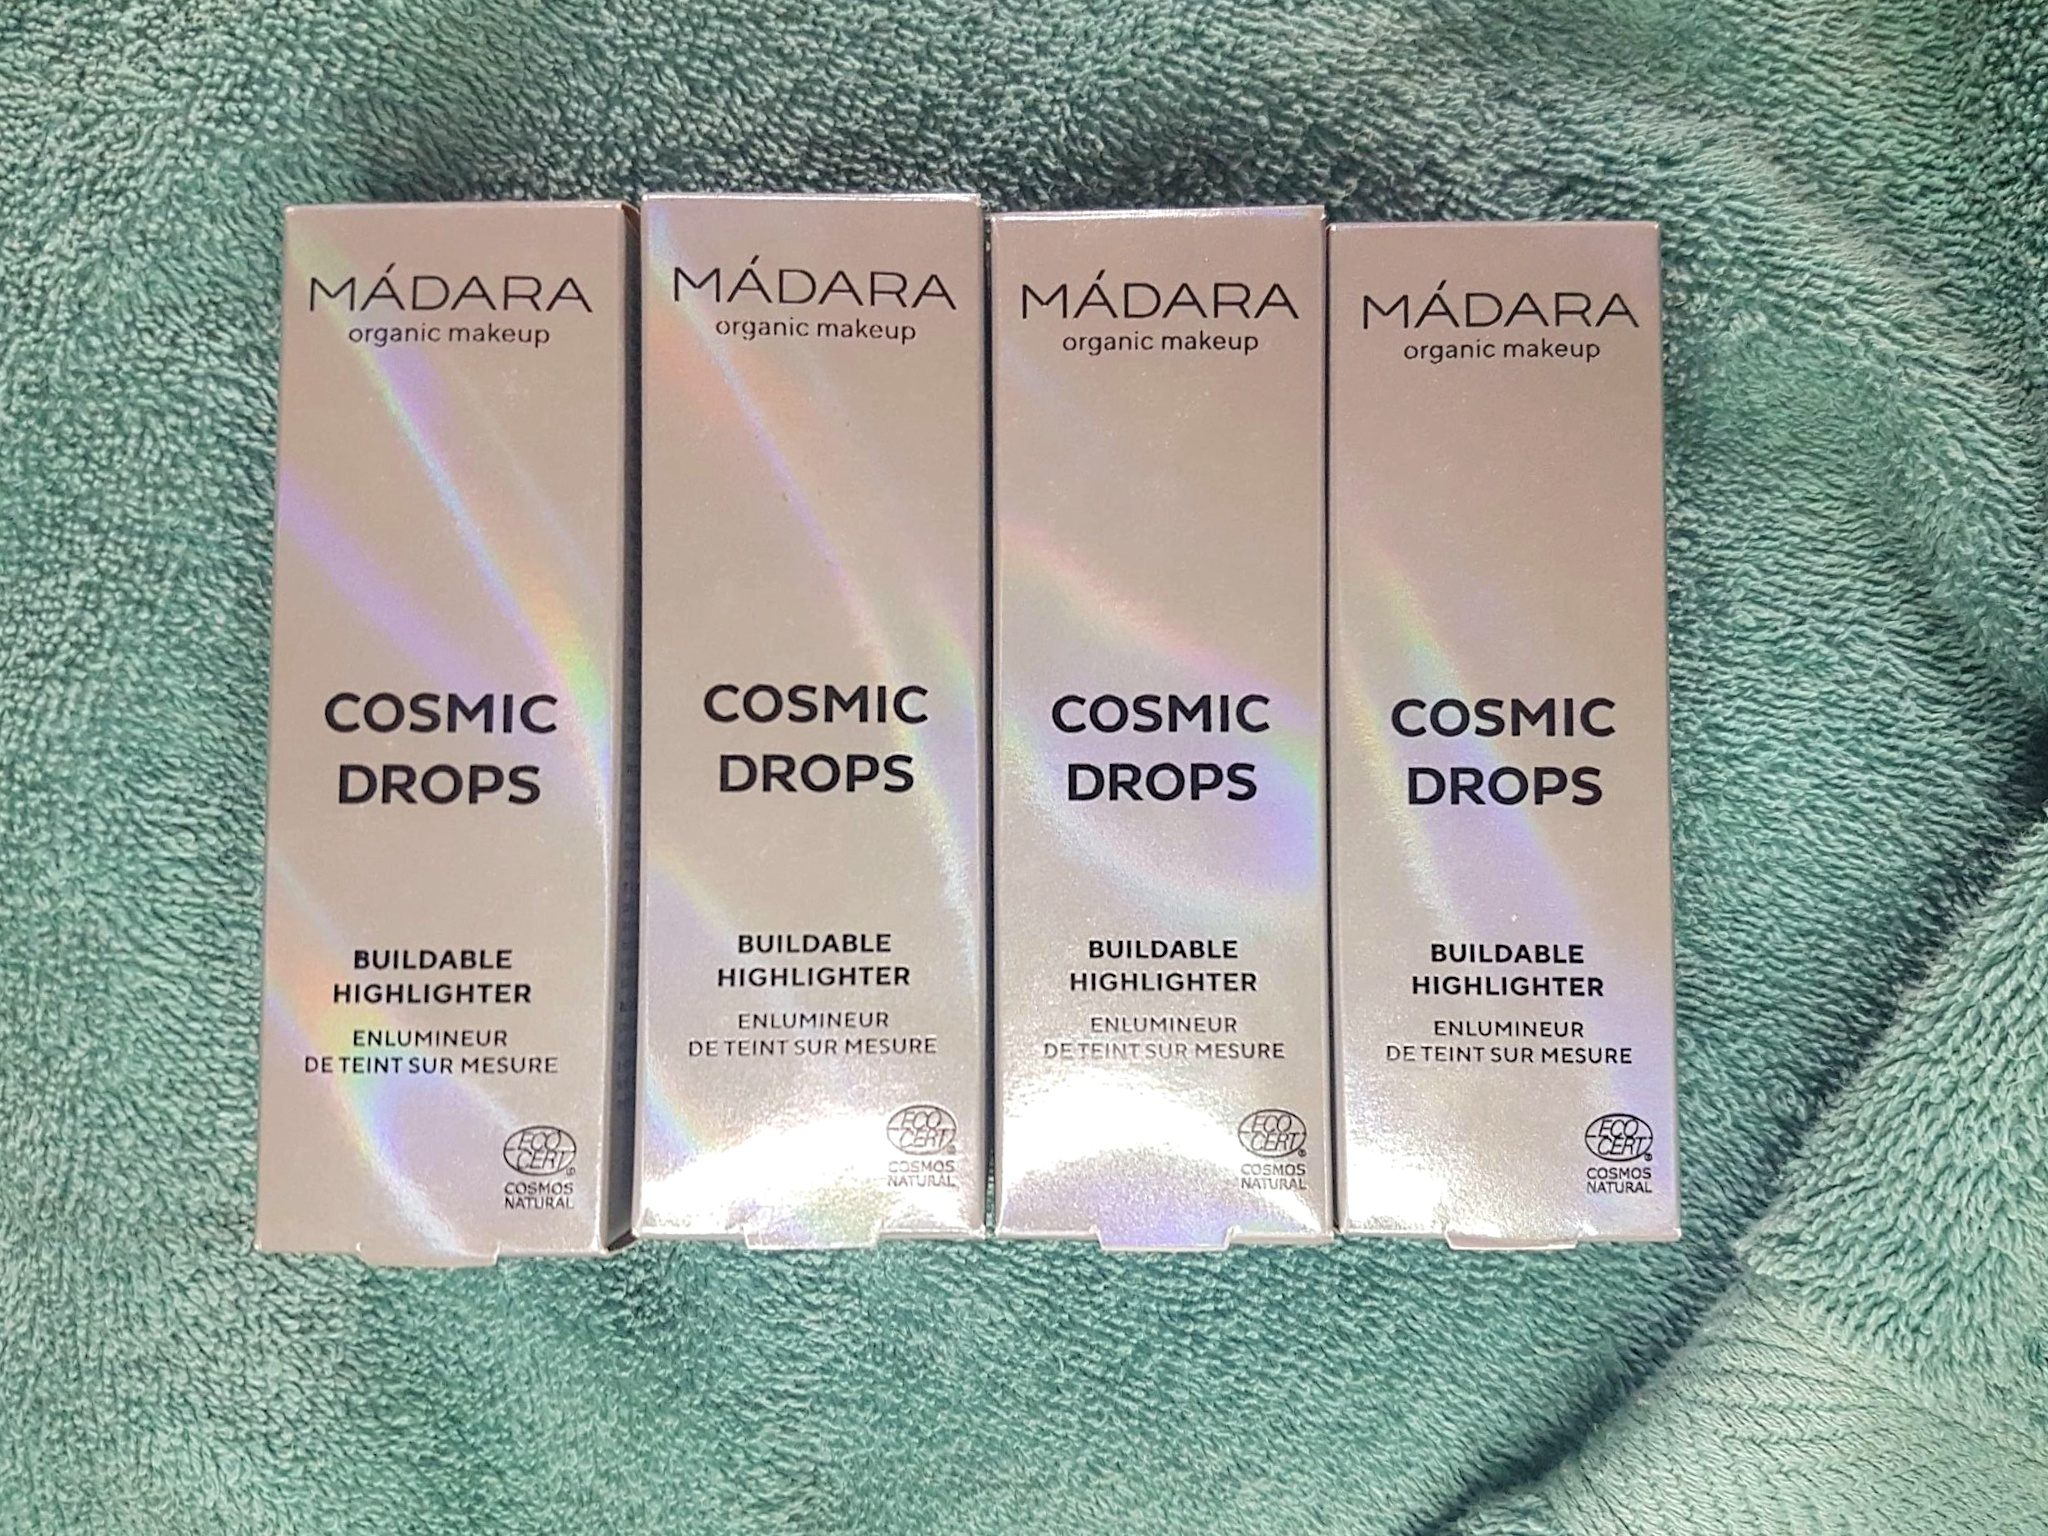 rainbow holographic packaging from Madara, four shades of Cosmic Drops from the natural liquid highlighter range on a teal terrycloth towel